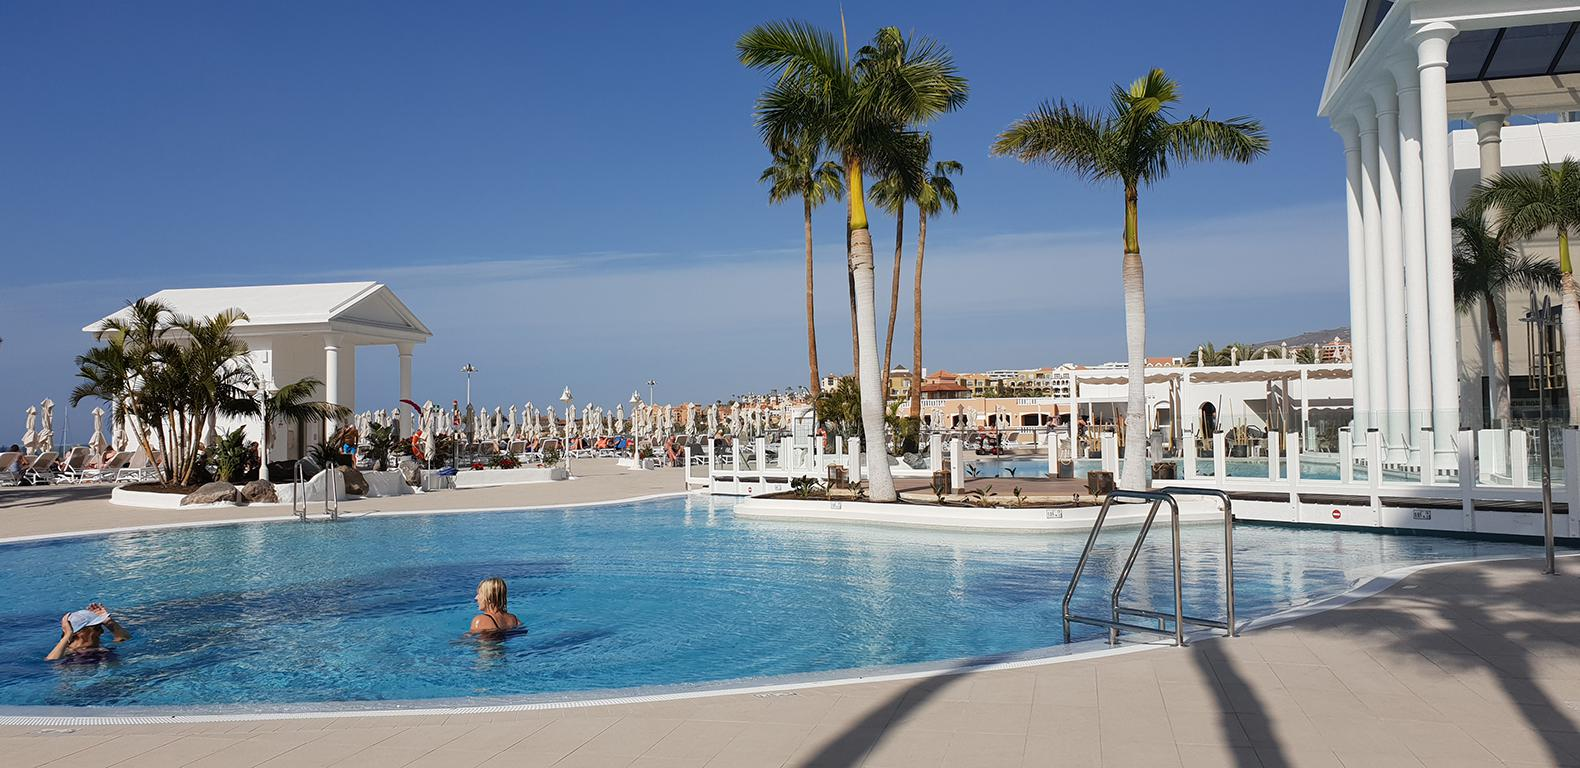 Hotel Guayarmina Princess - adults only